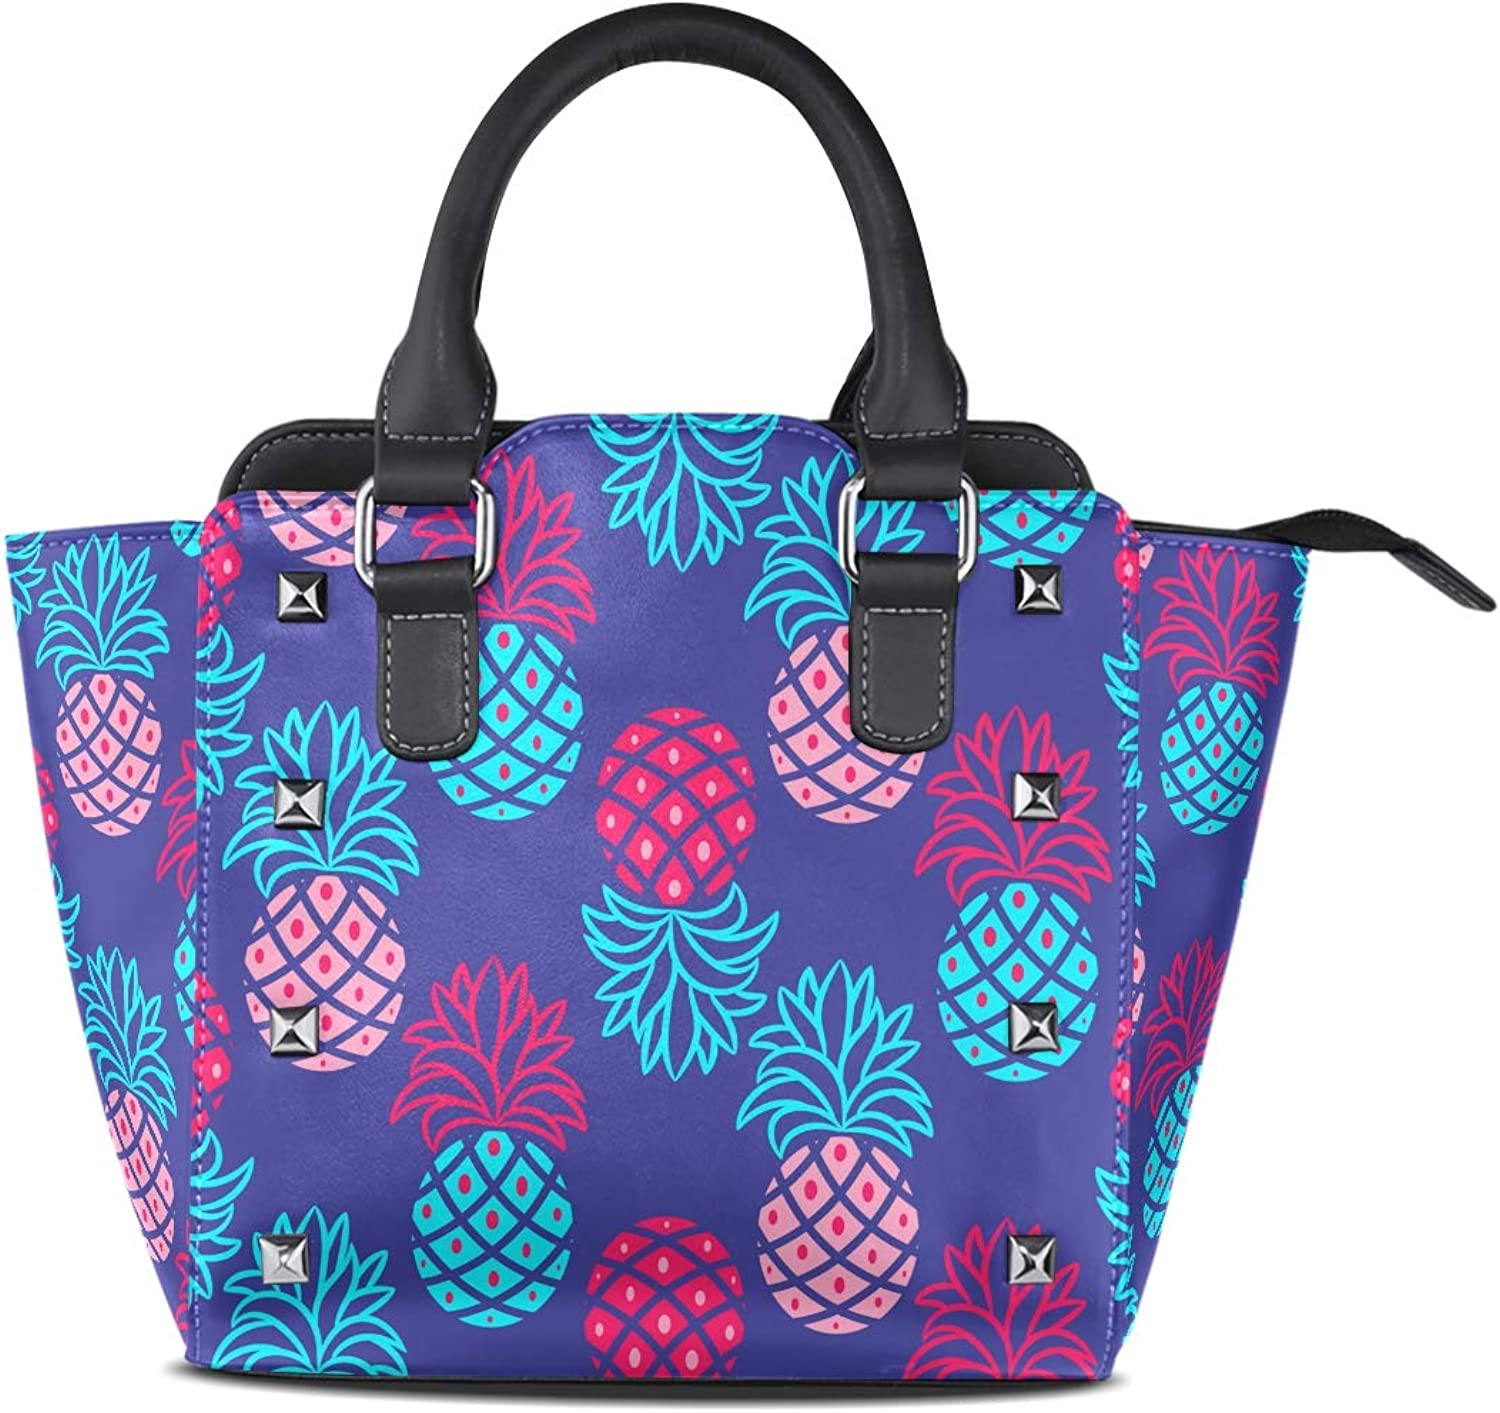 My Little Nest Women's Top Handle Satchel Handbag bluee Pink Pineapple Ladies PU Leather Shoulder Bag Crossbody Bag